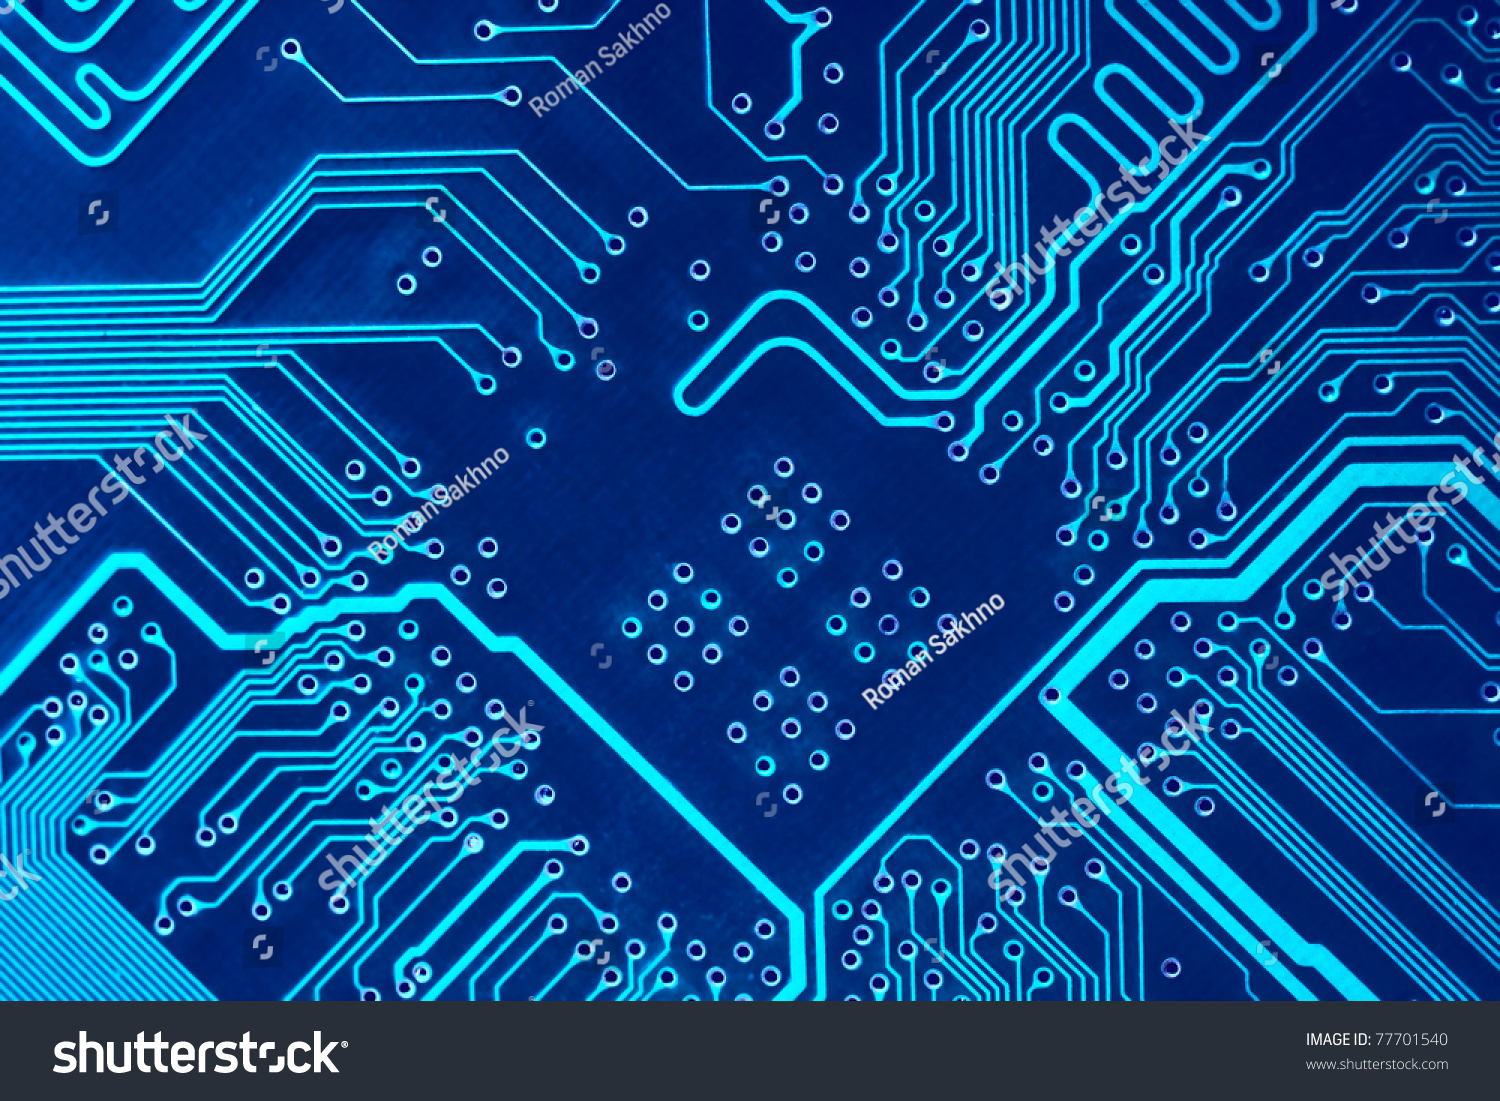 Abstract Circuit Board Background By Silvertiger: Abstract Blue Computer Circuit Board Close Up For